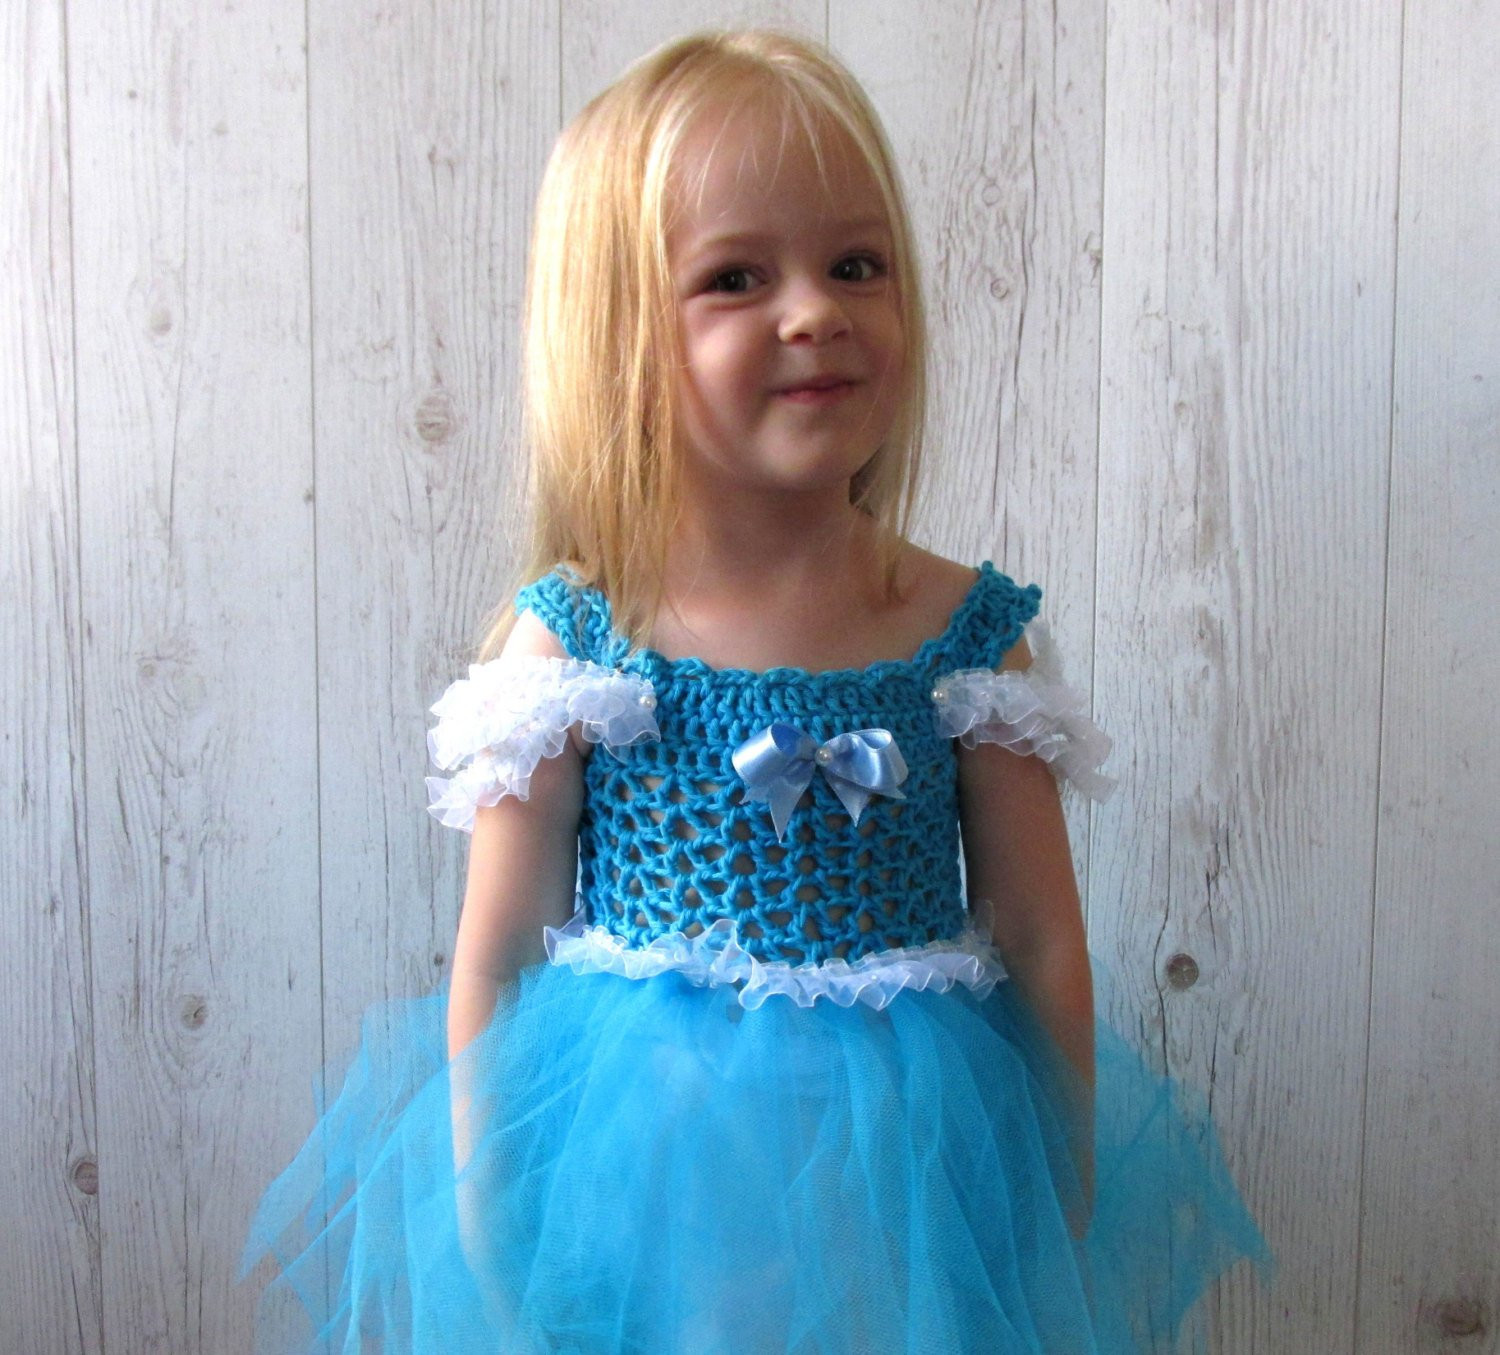 Crochet Flower Girl Dress Inspirational Cinderella Girls Crochet Tutu Dress Flower Girl Dress Of Contemporary 42 Pics Crochet Flower Girl Dress